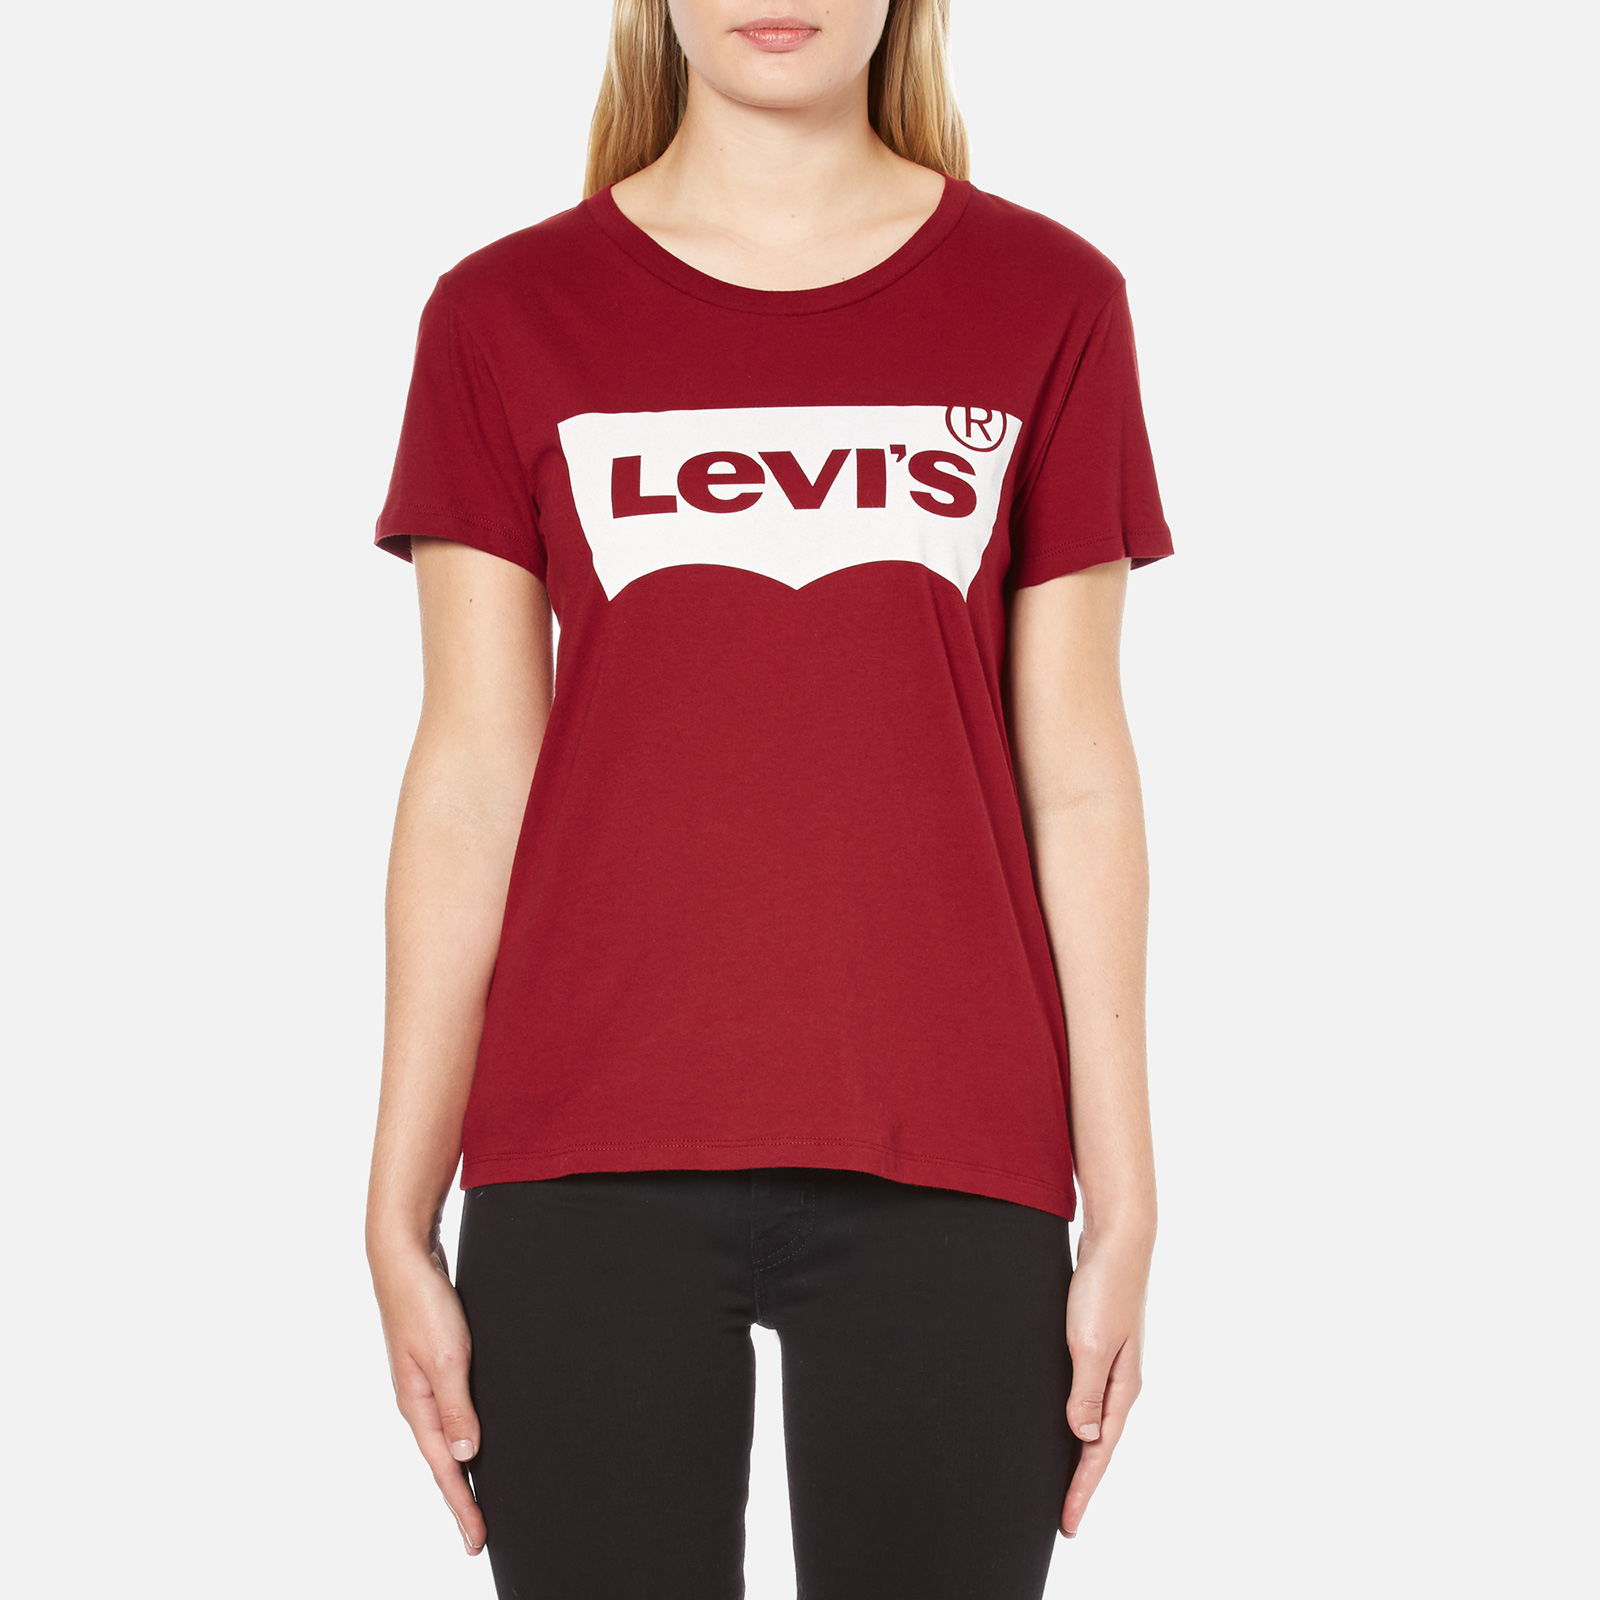 4123bdf1249 Levi s Women s The Perfect T-Shirt - Sun Dried Tomato - Free UK Delivery  over £50